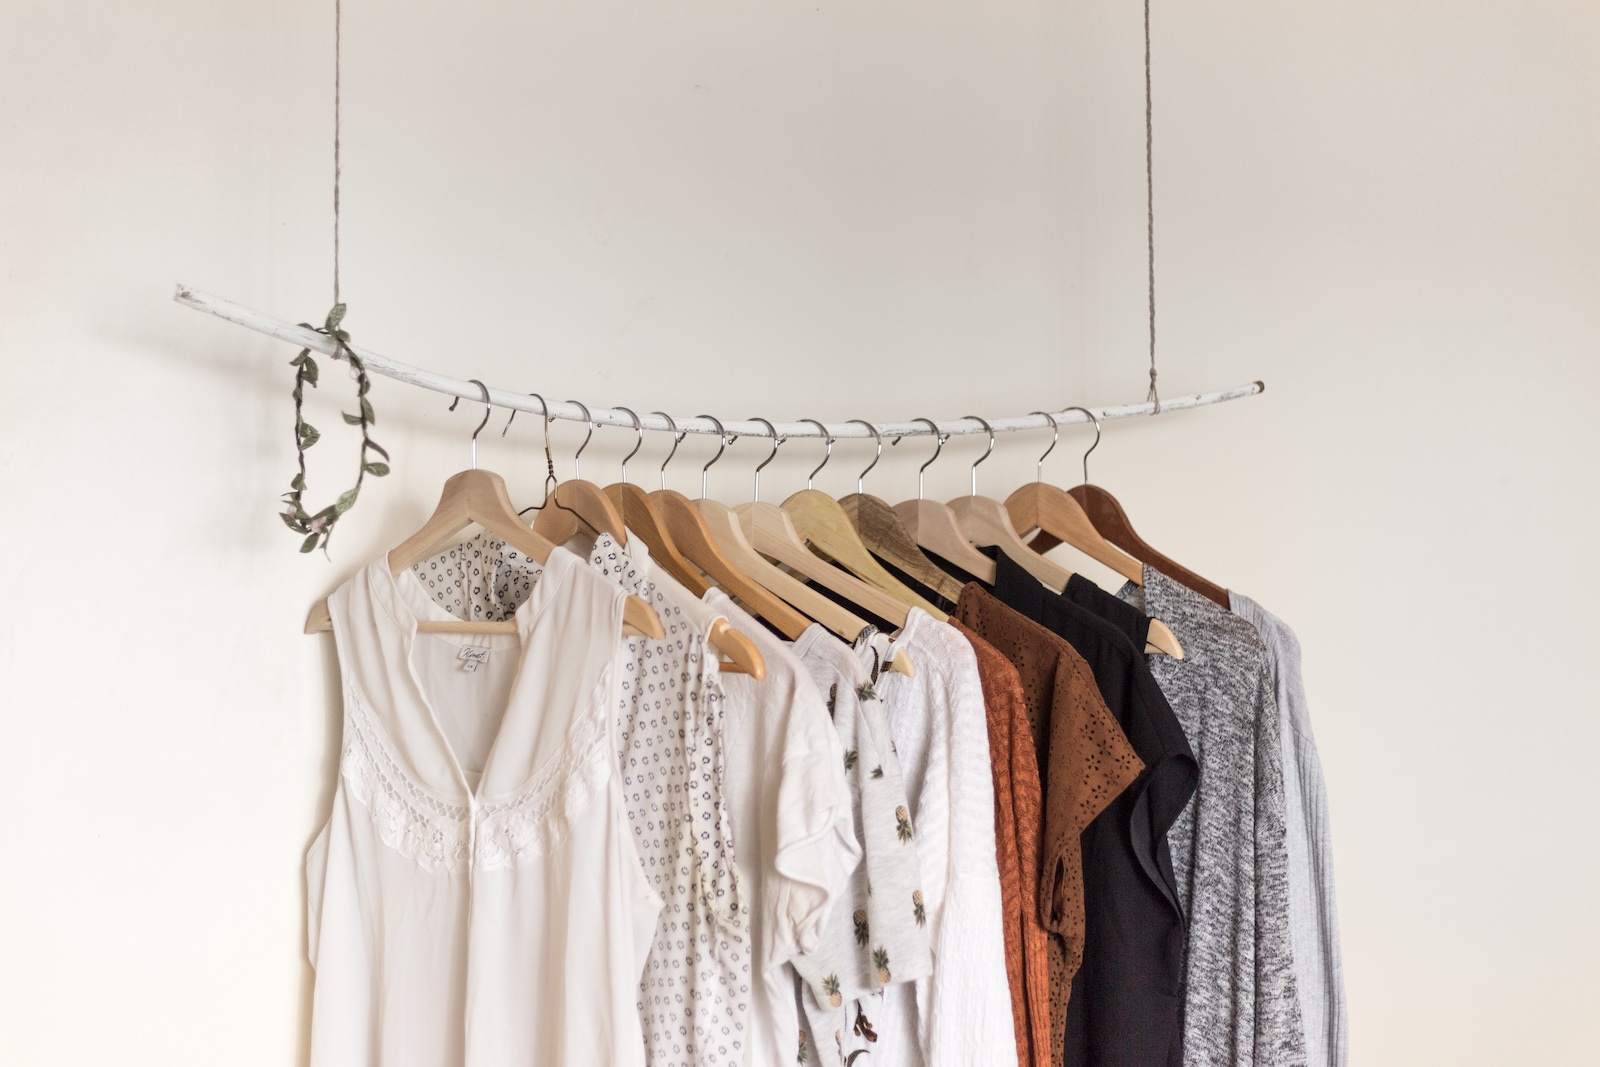 Learn how to organize your bedroom with simple tips for the closet, the bed and all the finishing touches.